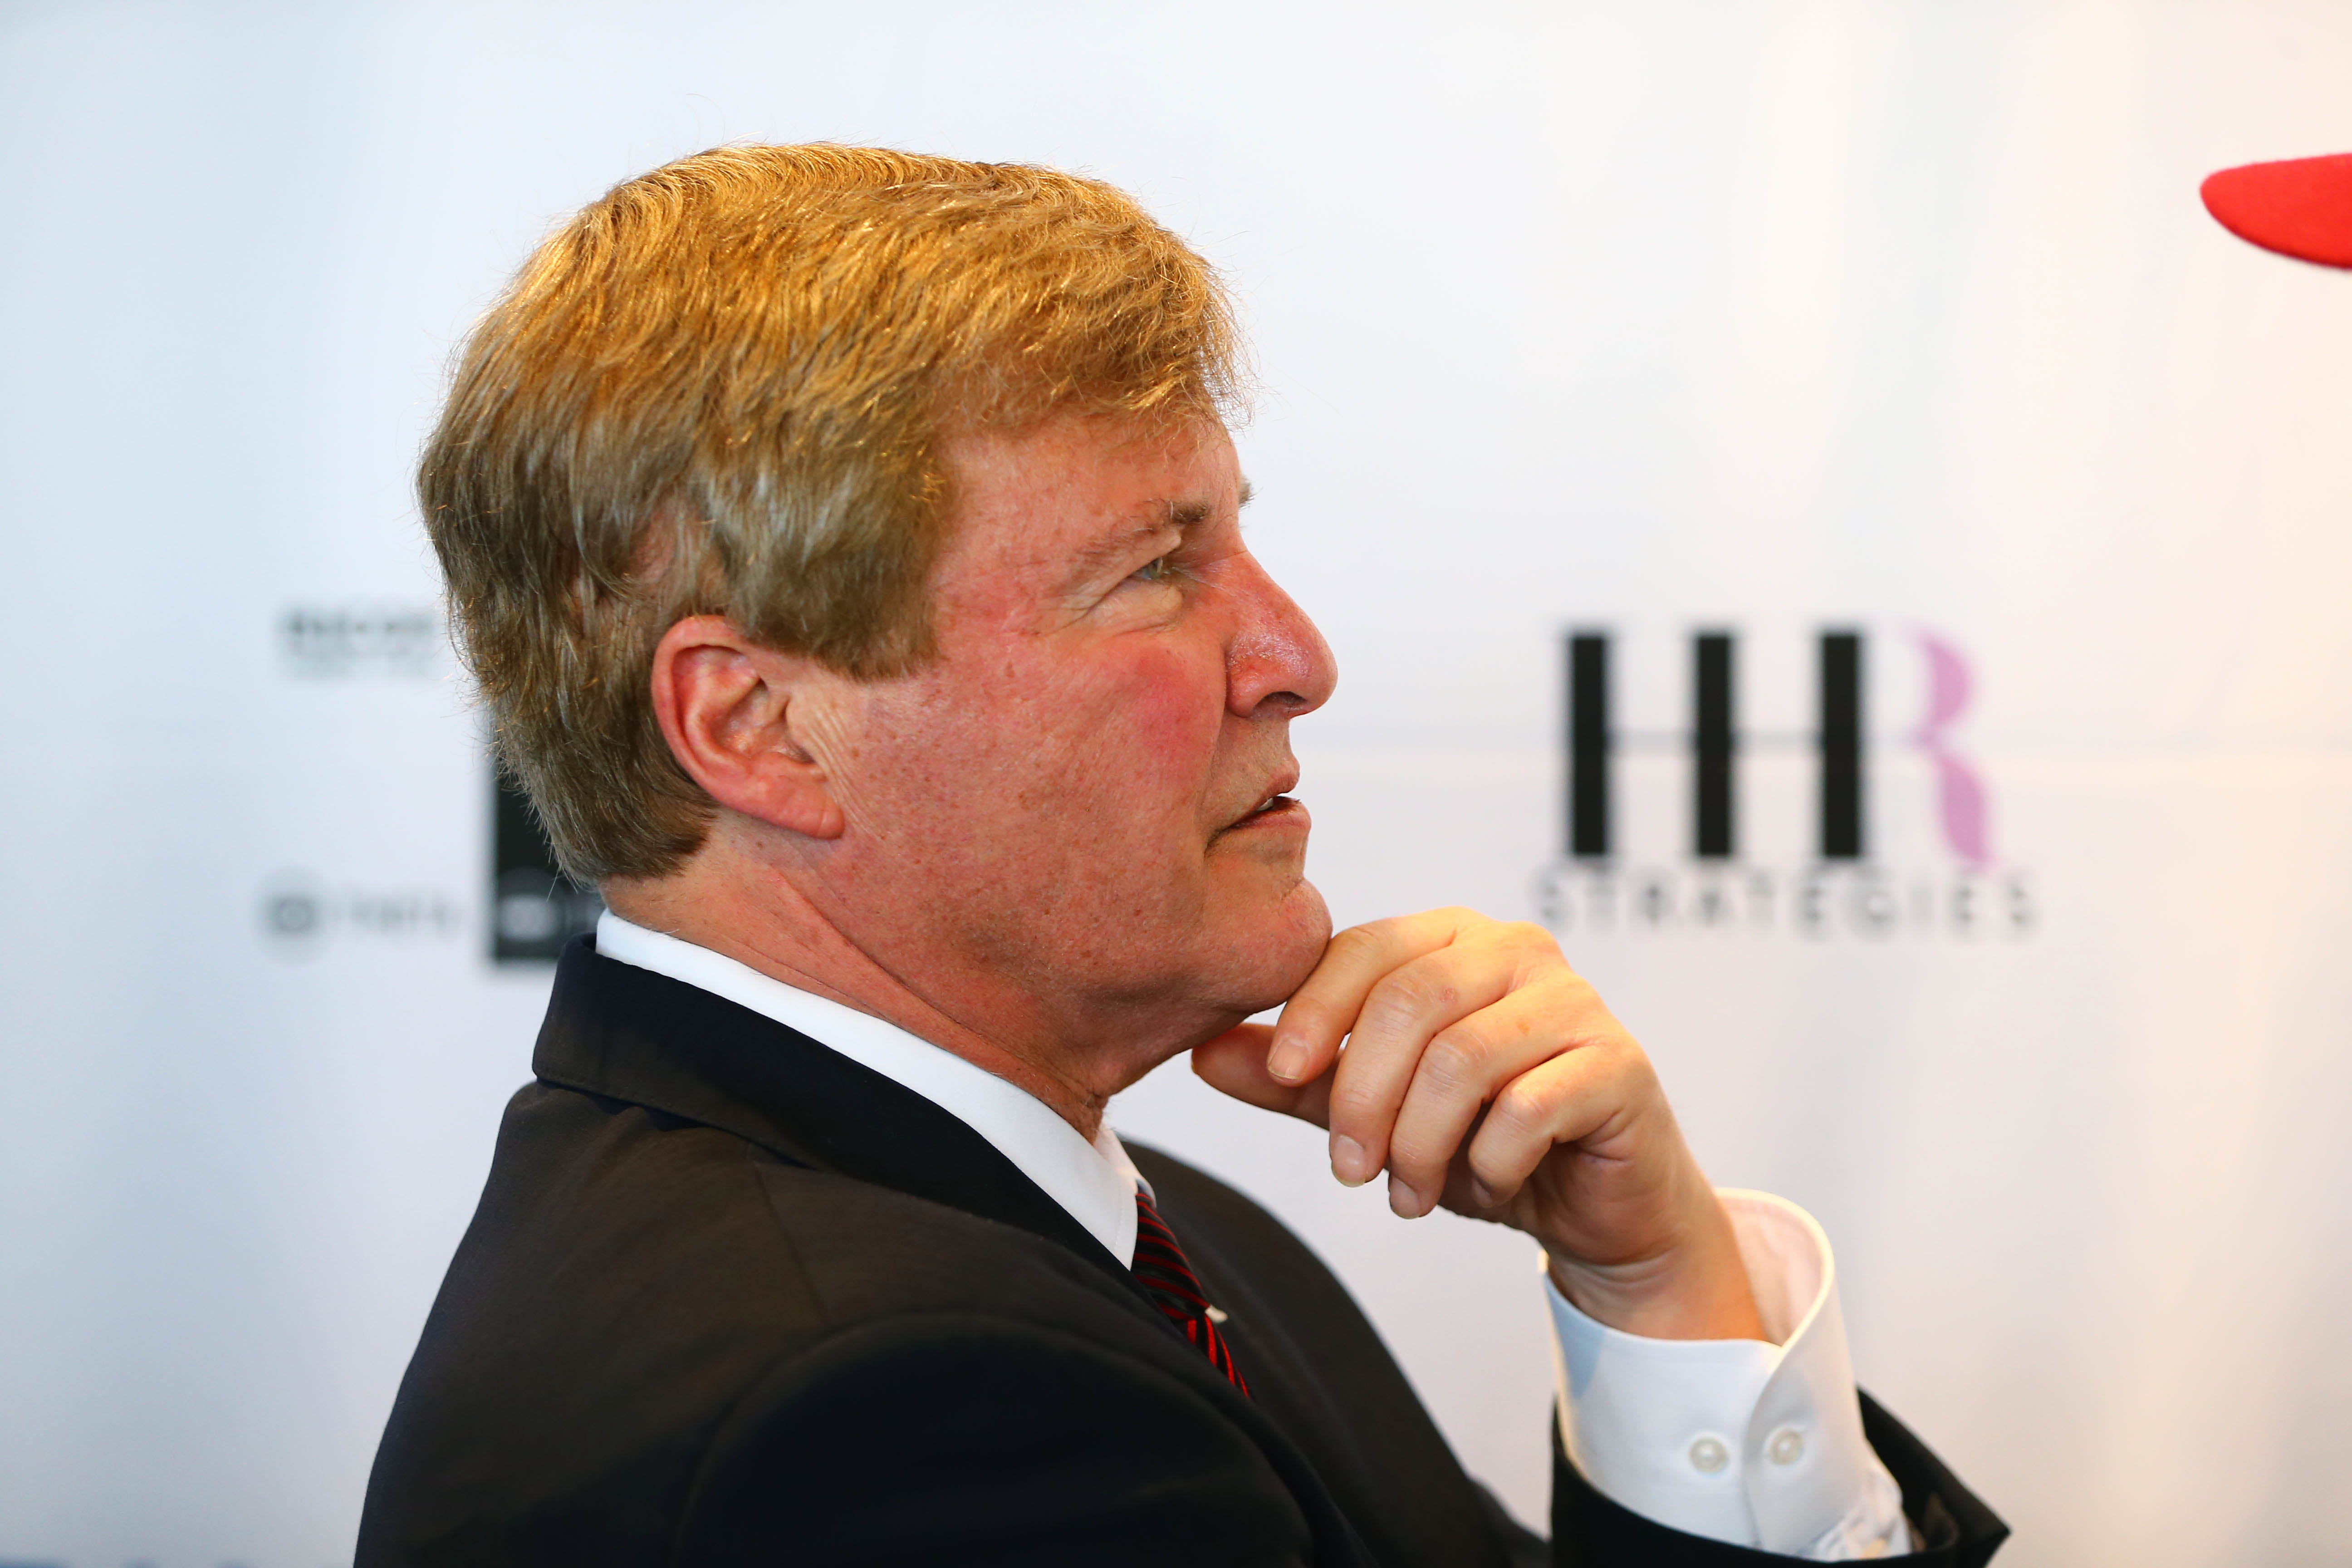 9099740-nfl-super-bowl-50-leigh-steinberg-party